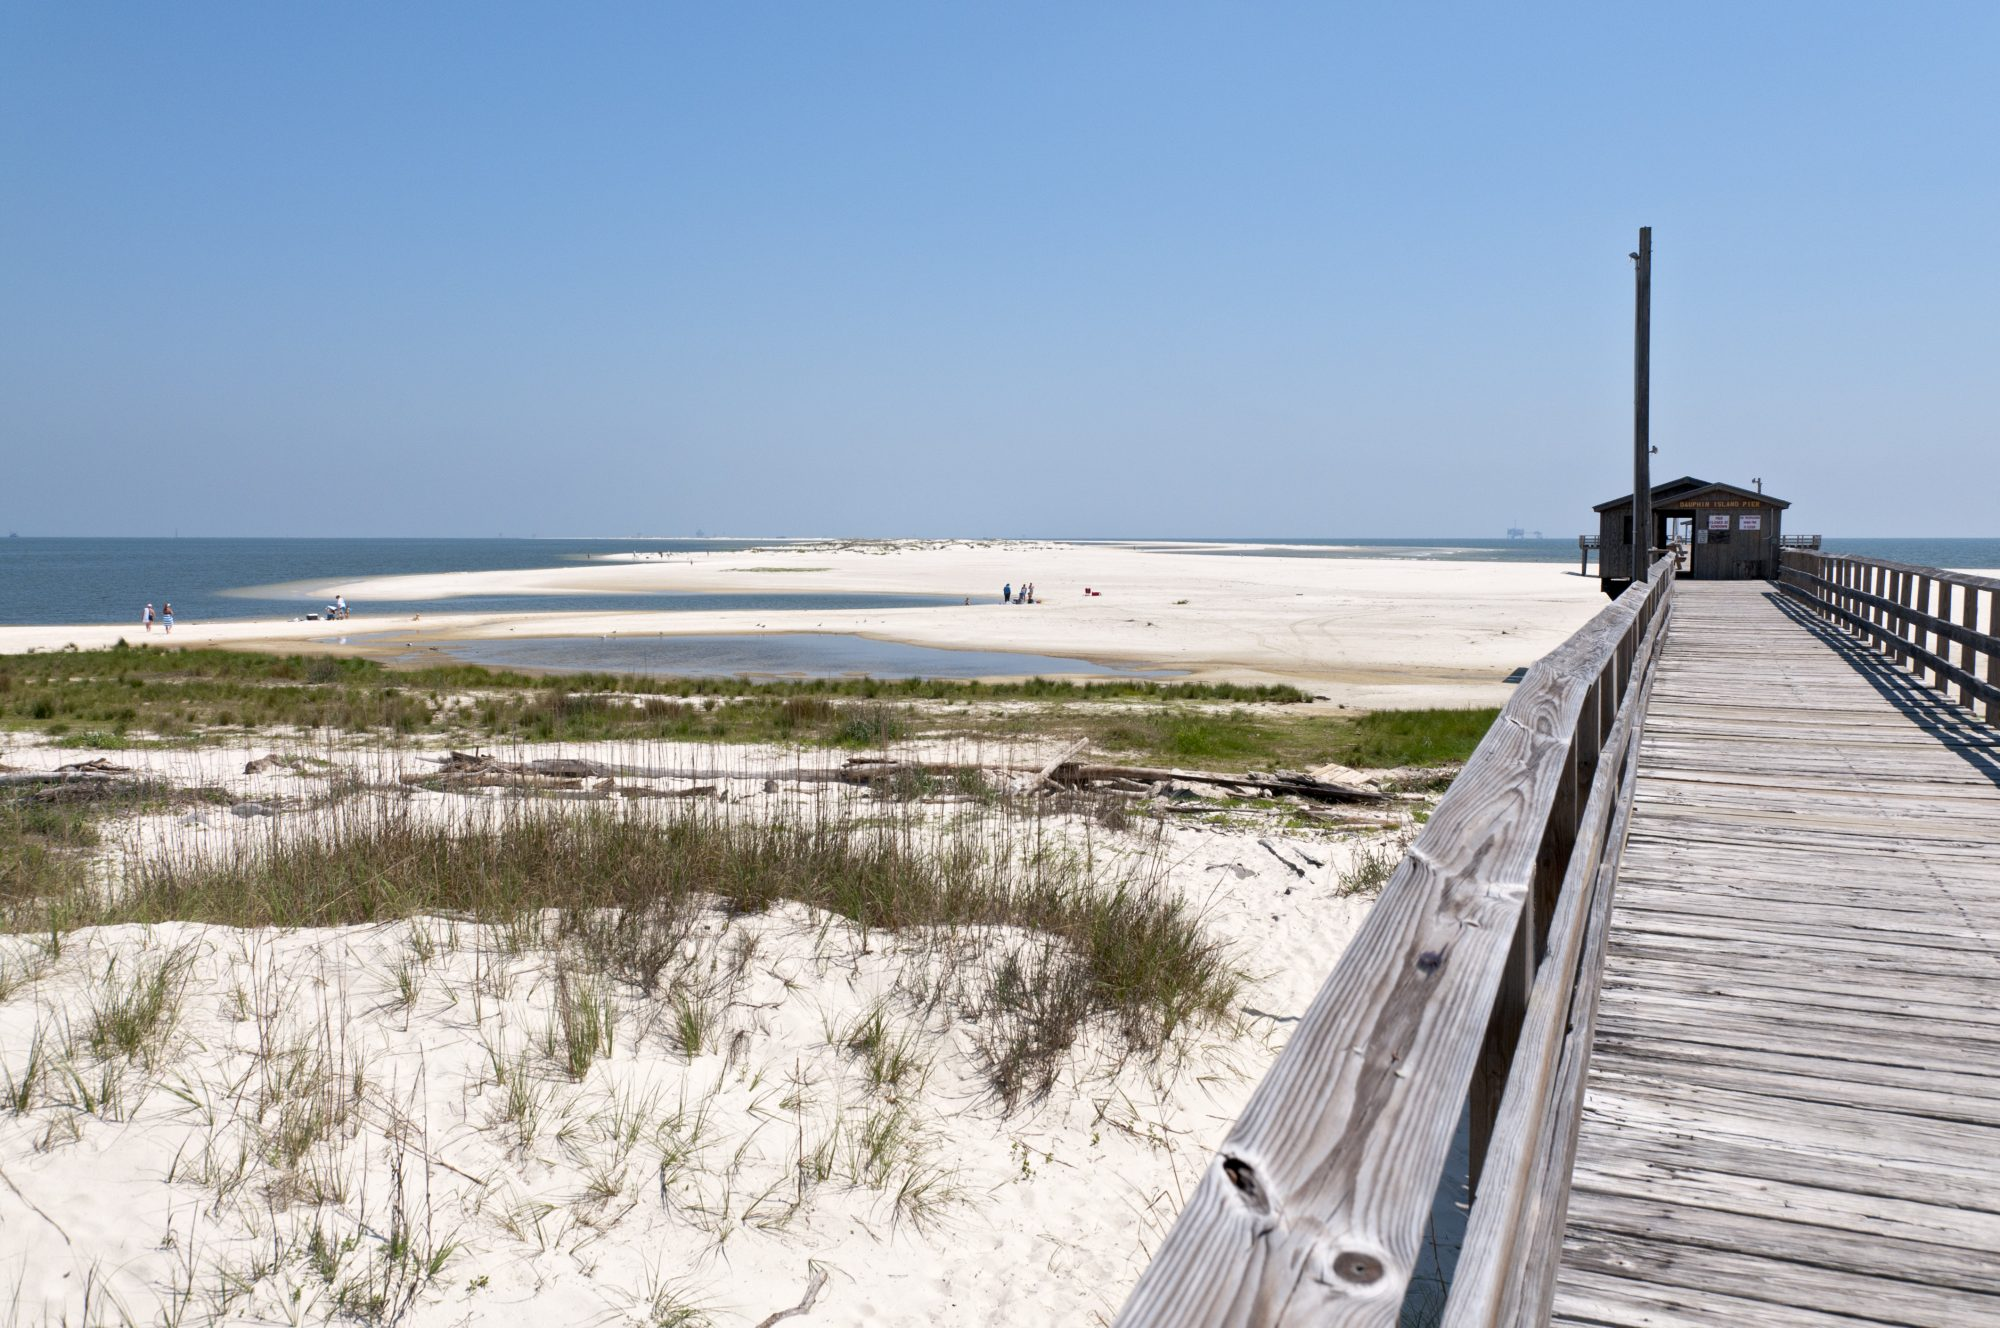 If you have $350,000…head to Dauphin Island, AlabamaThis sliver of a barrier island separating Mobile Bay from the Gulf of Mexico is beloved among Southerners and beyond for its wealth of water views and relaxed way of life. In addition to top-notch beaches and plenty of opportunity for watersports, must-dos here include a visit to the Audubon Bird Sanctuary, a 137-acre nature preserve that sees one of North America's largest bird migrations annually. Rental homeowners here earn an average of $269 per night from vacationers for an overall capitalization rate of 7 percent—more than any other beach town on the list.